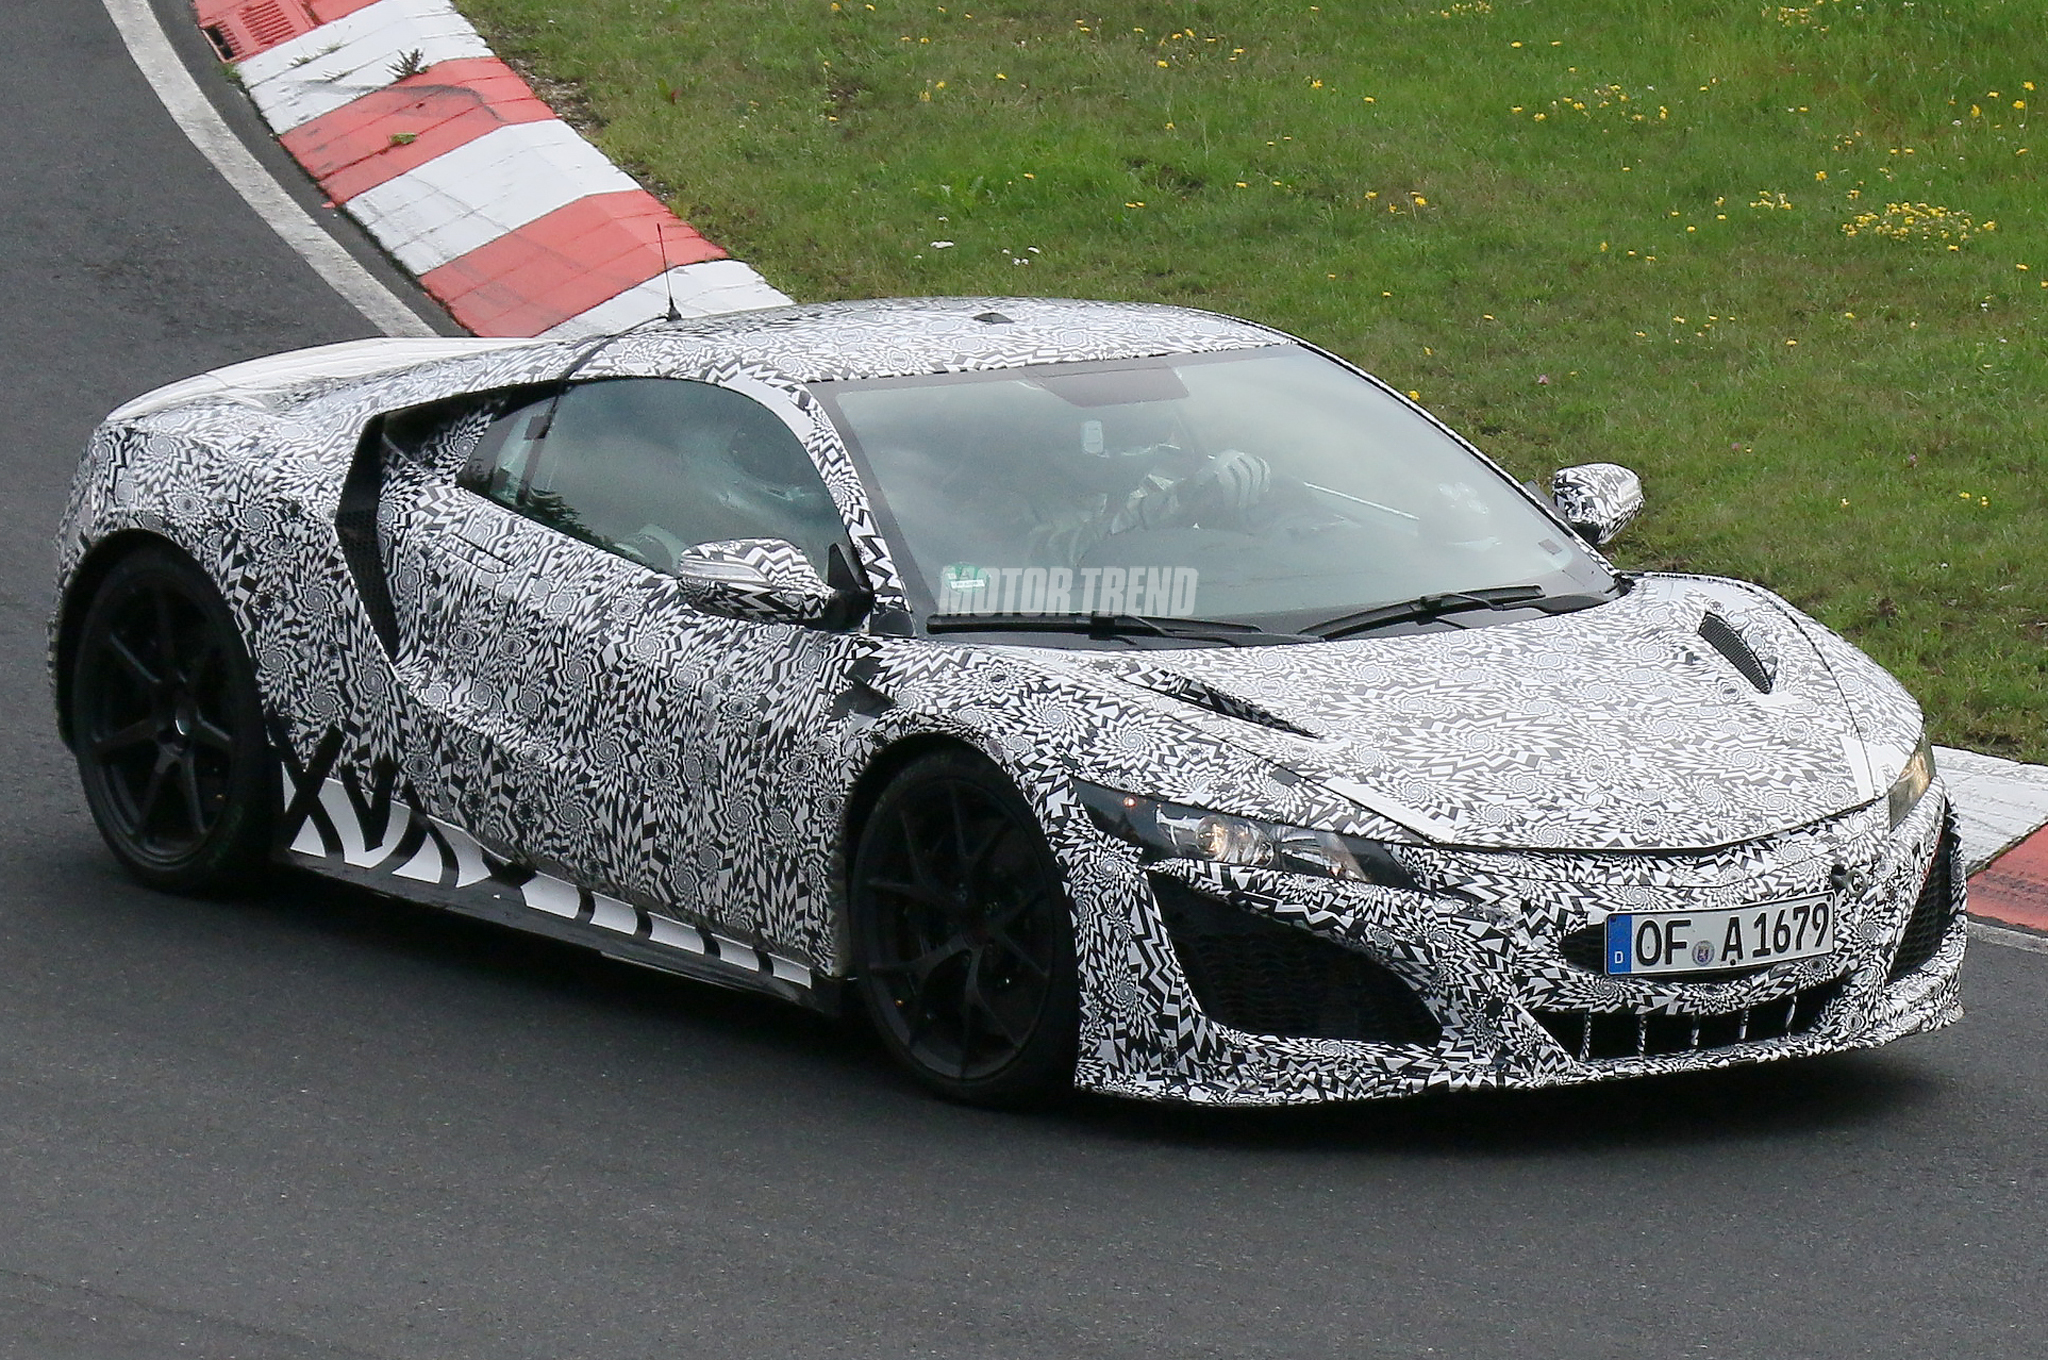 Spied! Acura NSX Prototype Keeps Concept-Car Looks, Bombs the 'Ring